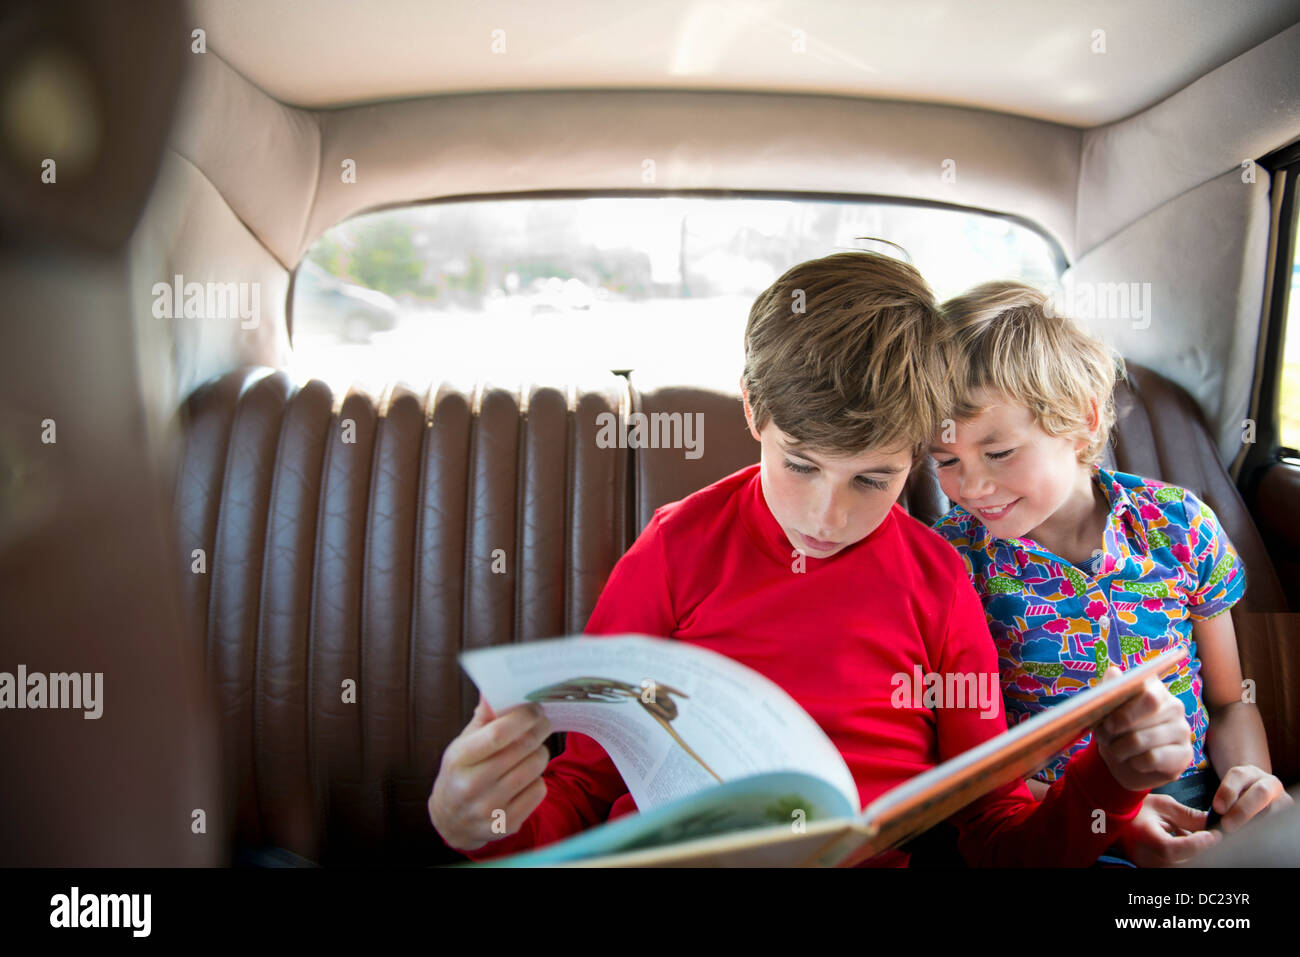 Boys sitting in back of car reading book - Stock Image